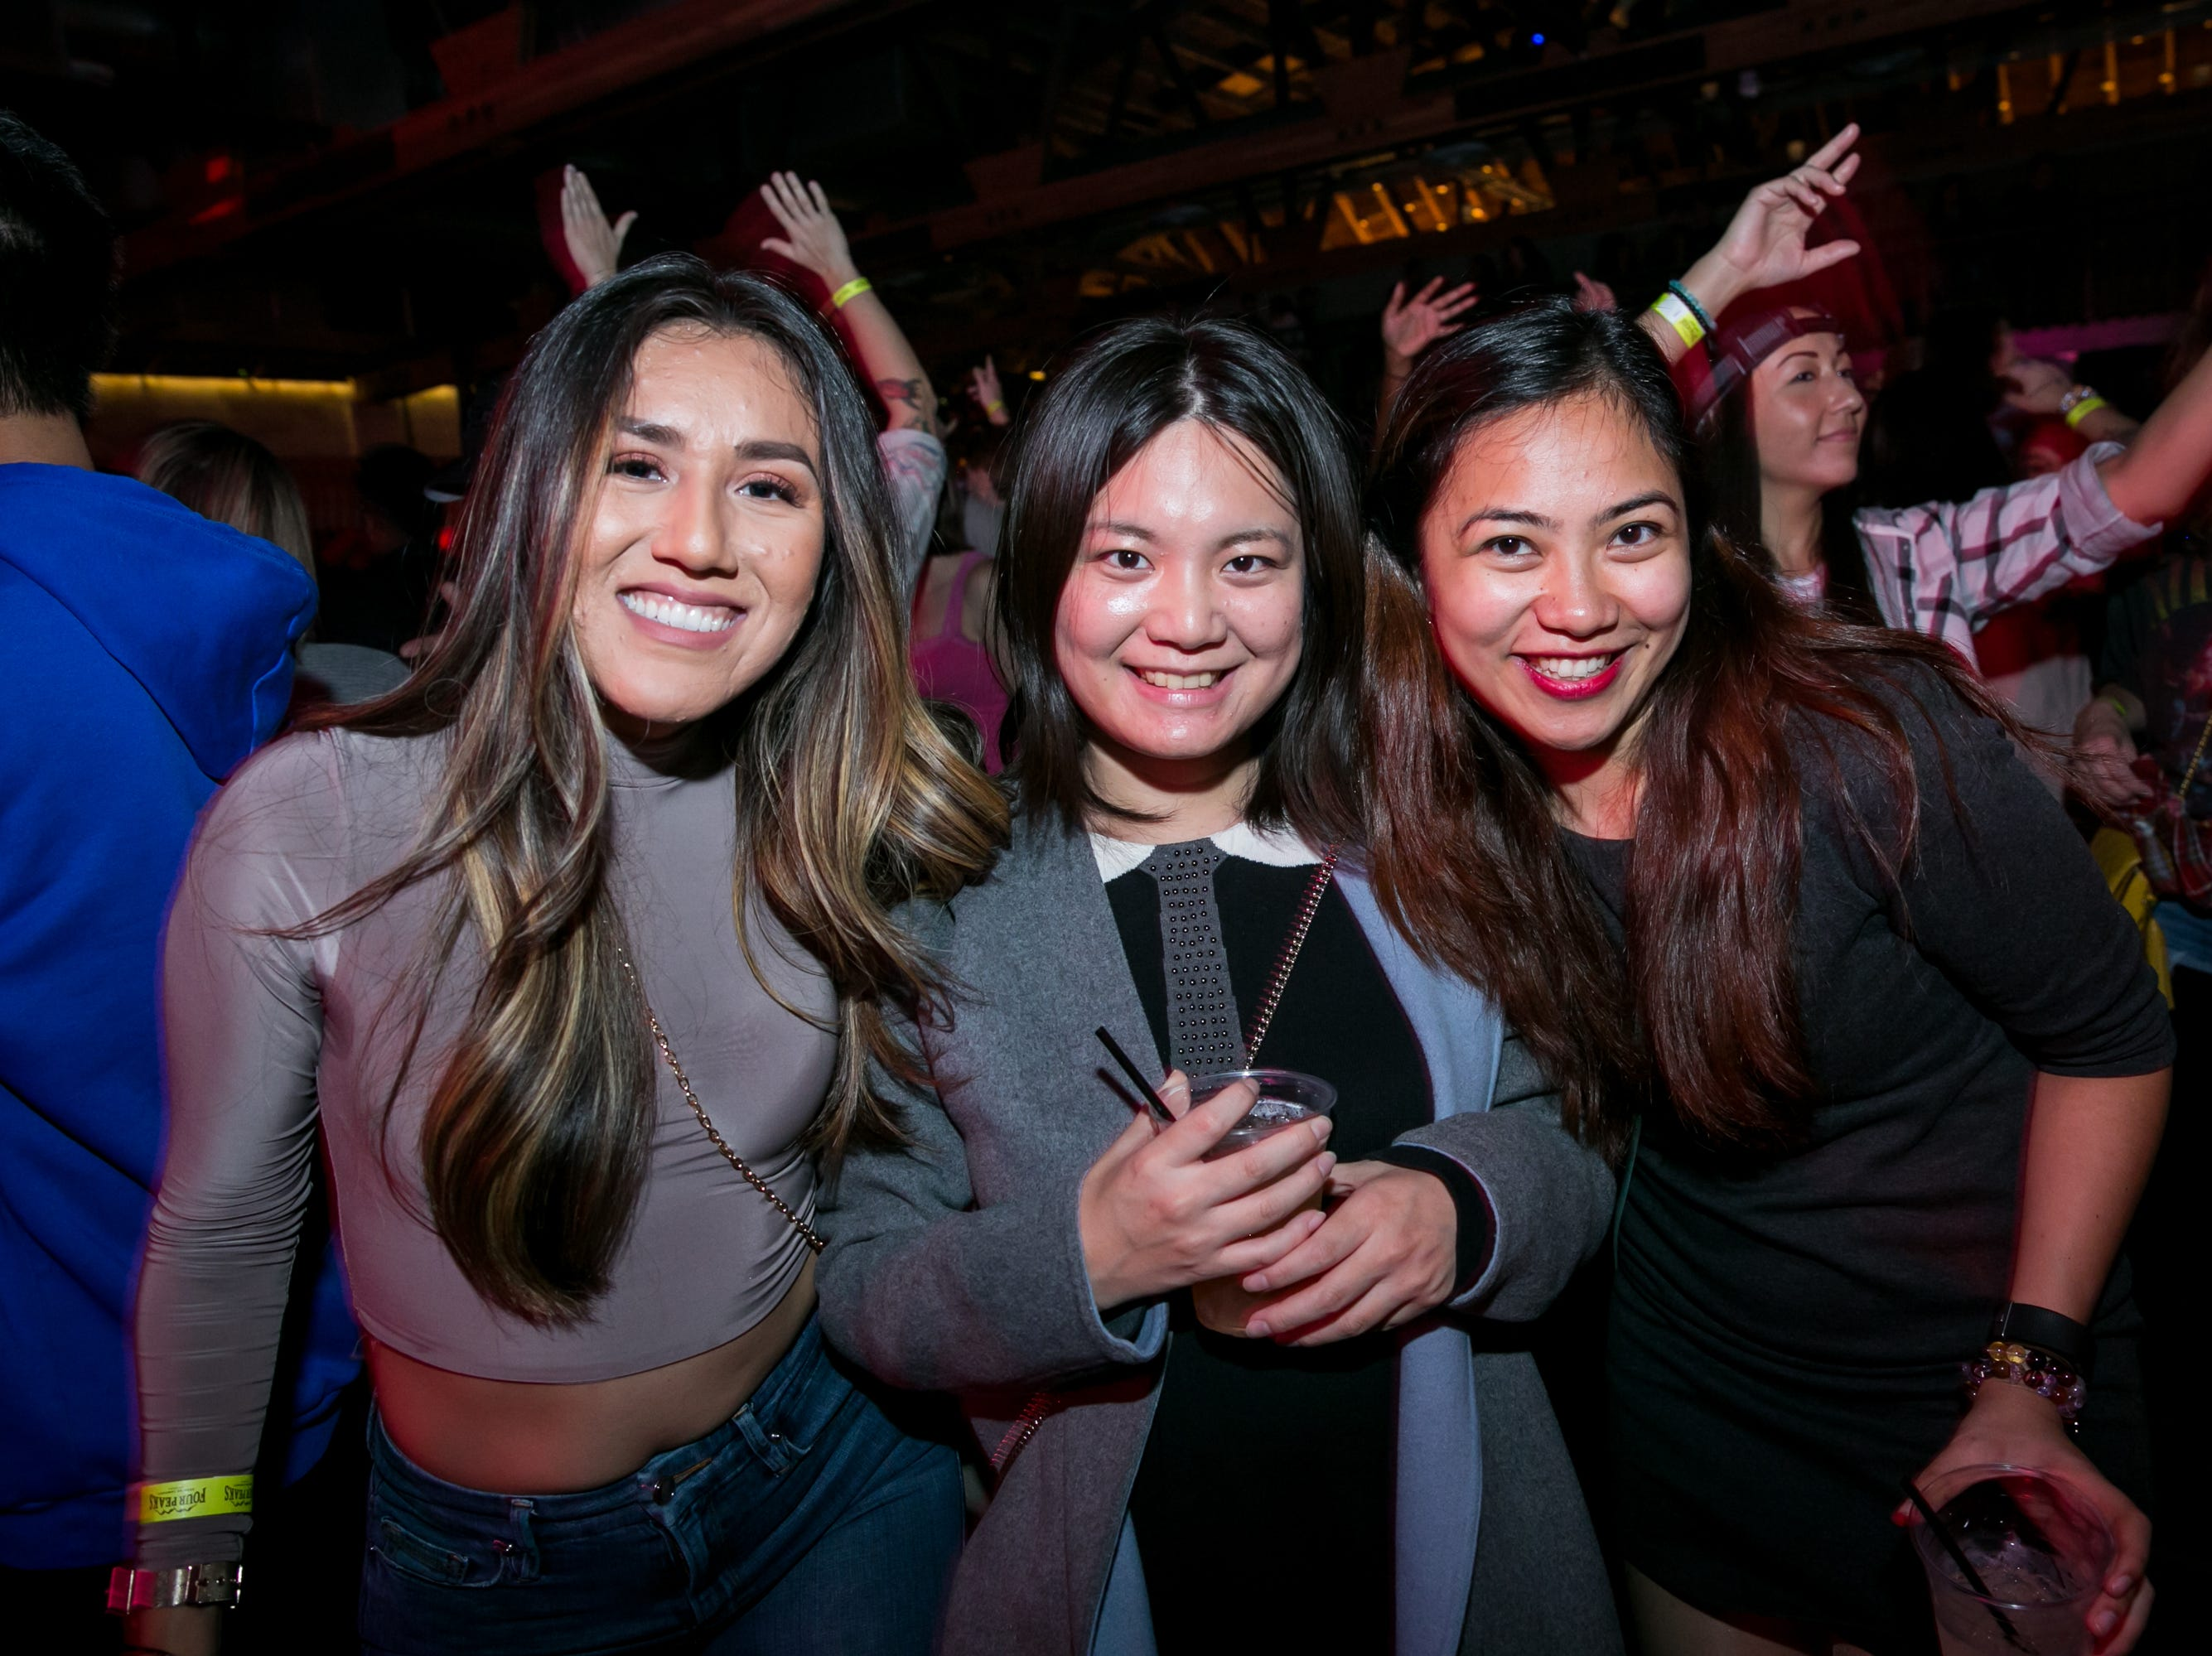 These ladies had a blast dancing during Old School - 90's Hip Hop Dance Party at The Van Buren on Friday, November 30, 2018.